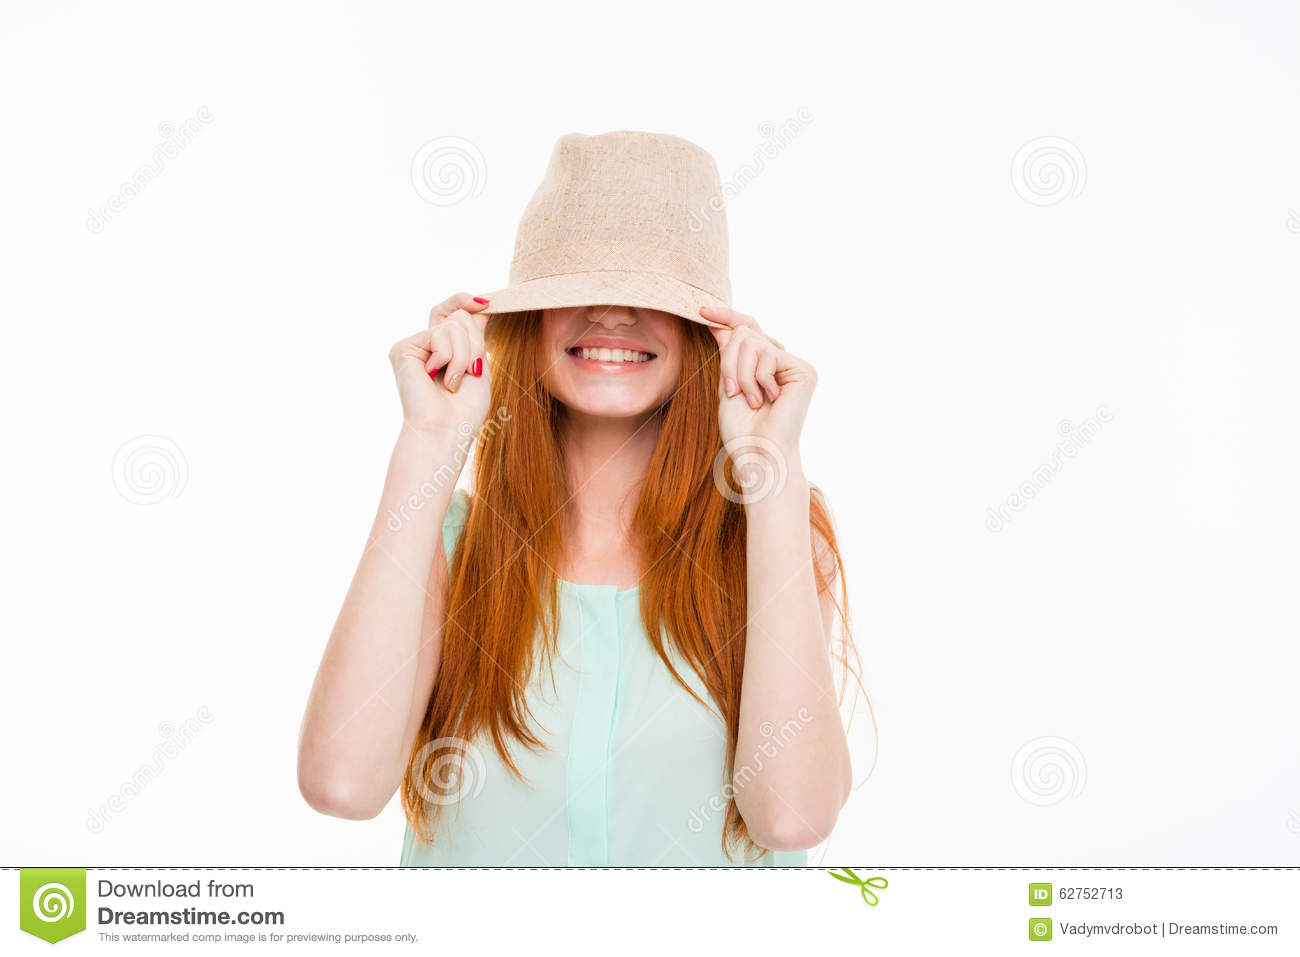 Funny happy smiling amusing young woman with long red hair hiding eyes  under boonie hat posing on white background 78d457453d9